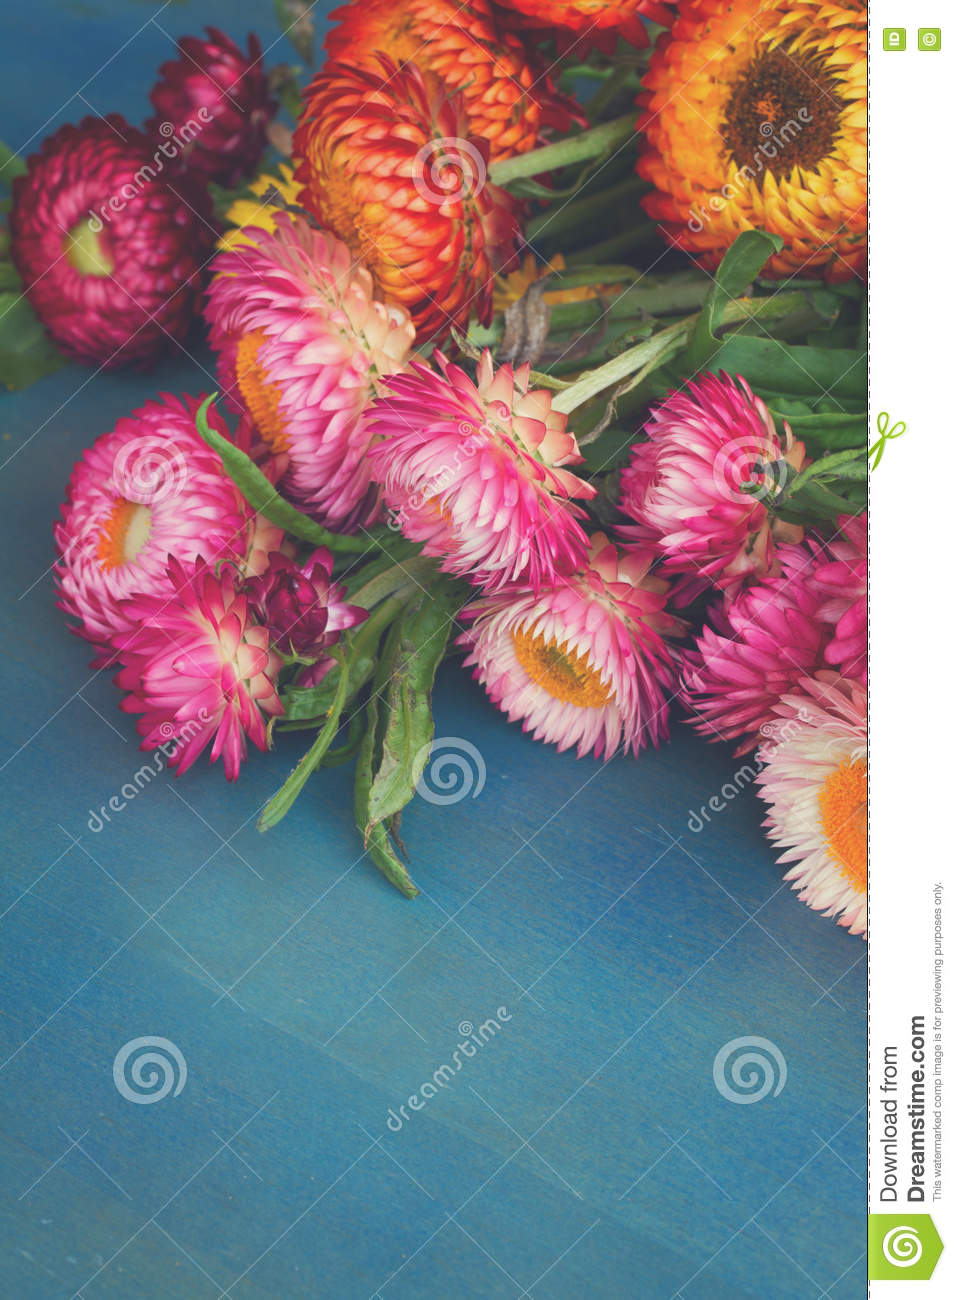 Bouquet Of Everlasting Flowers Stock Image Image Of Bloom Bunch